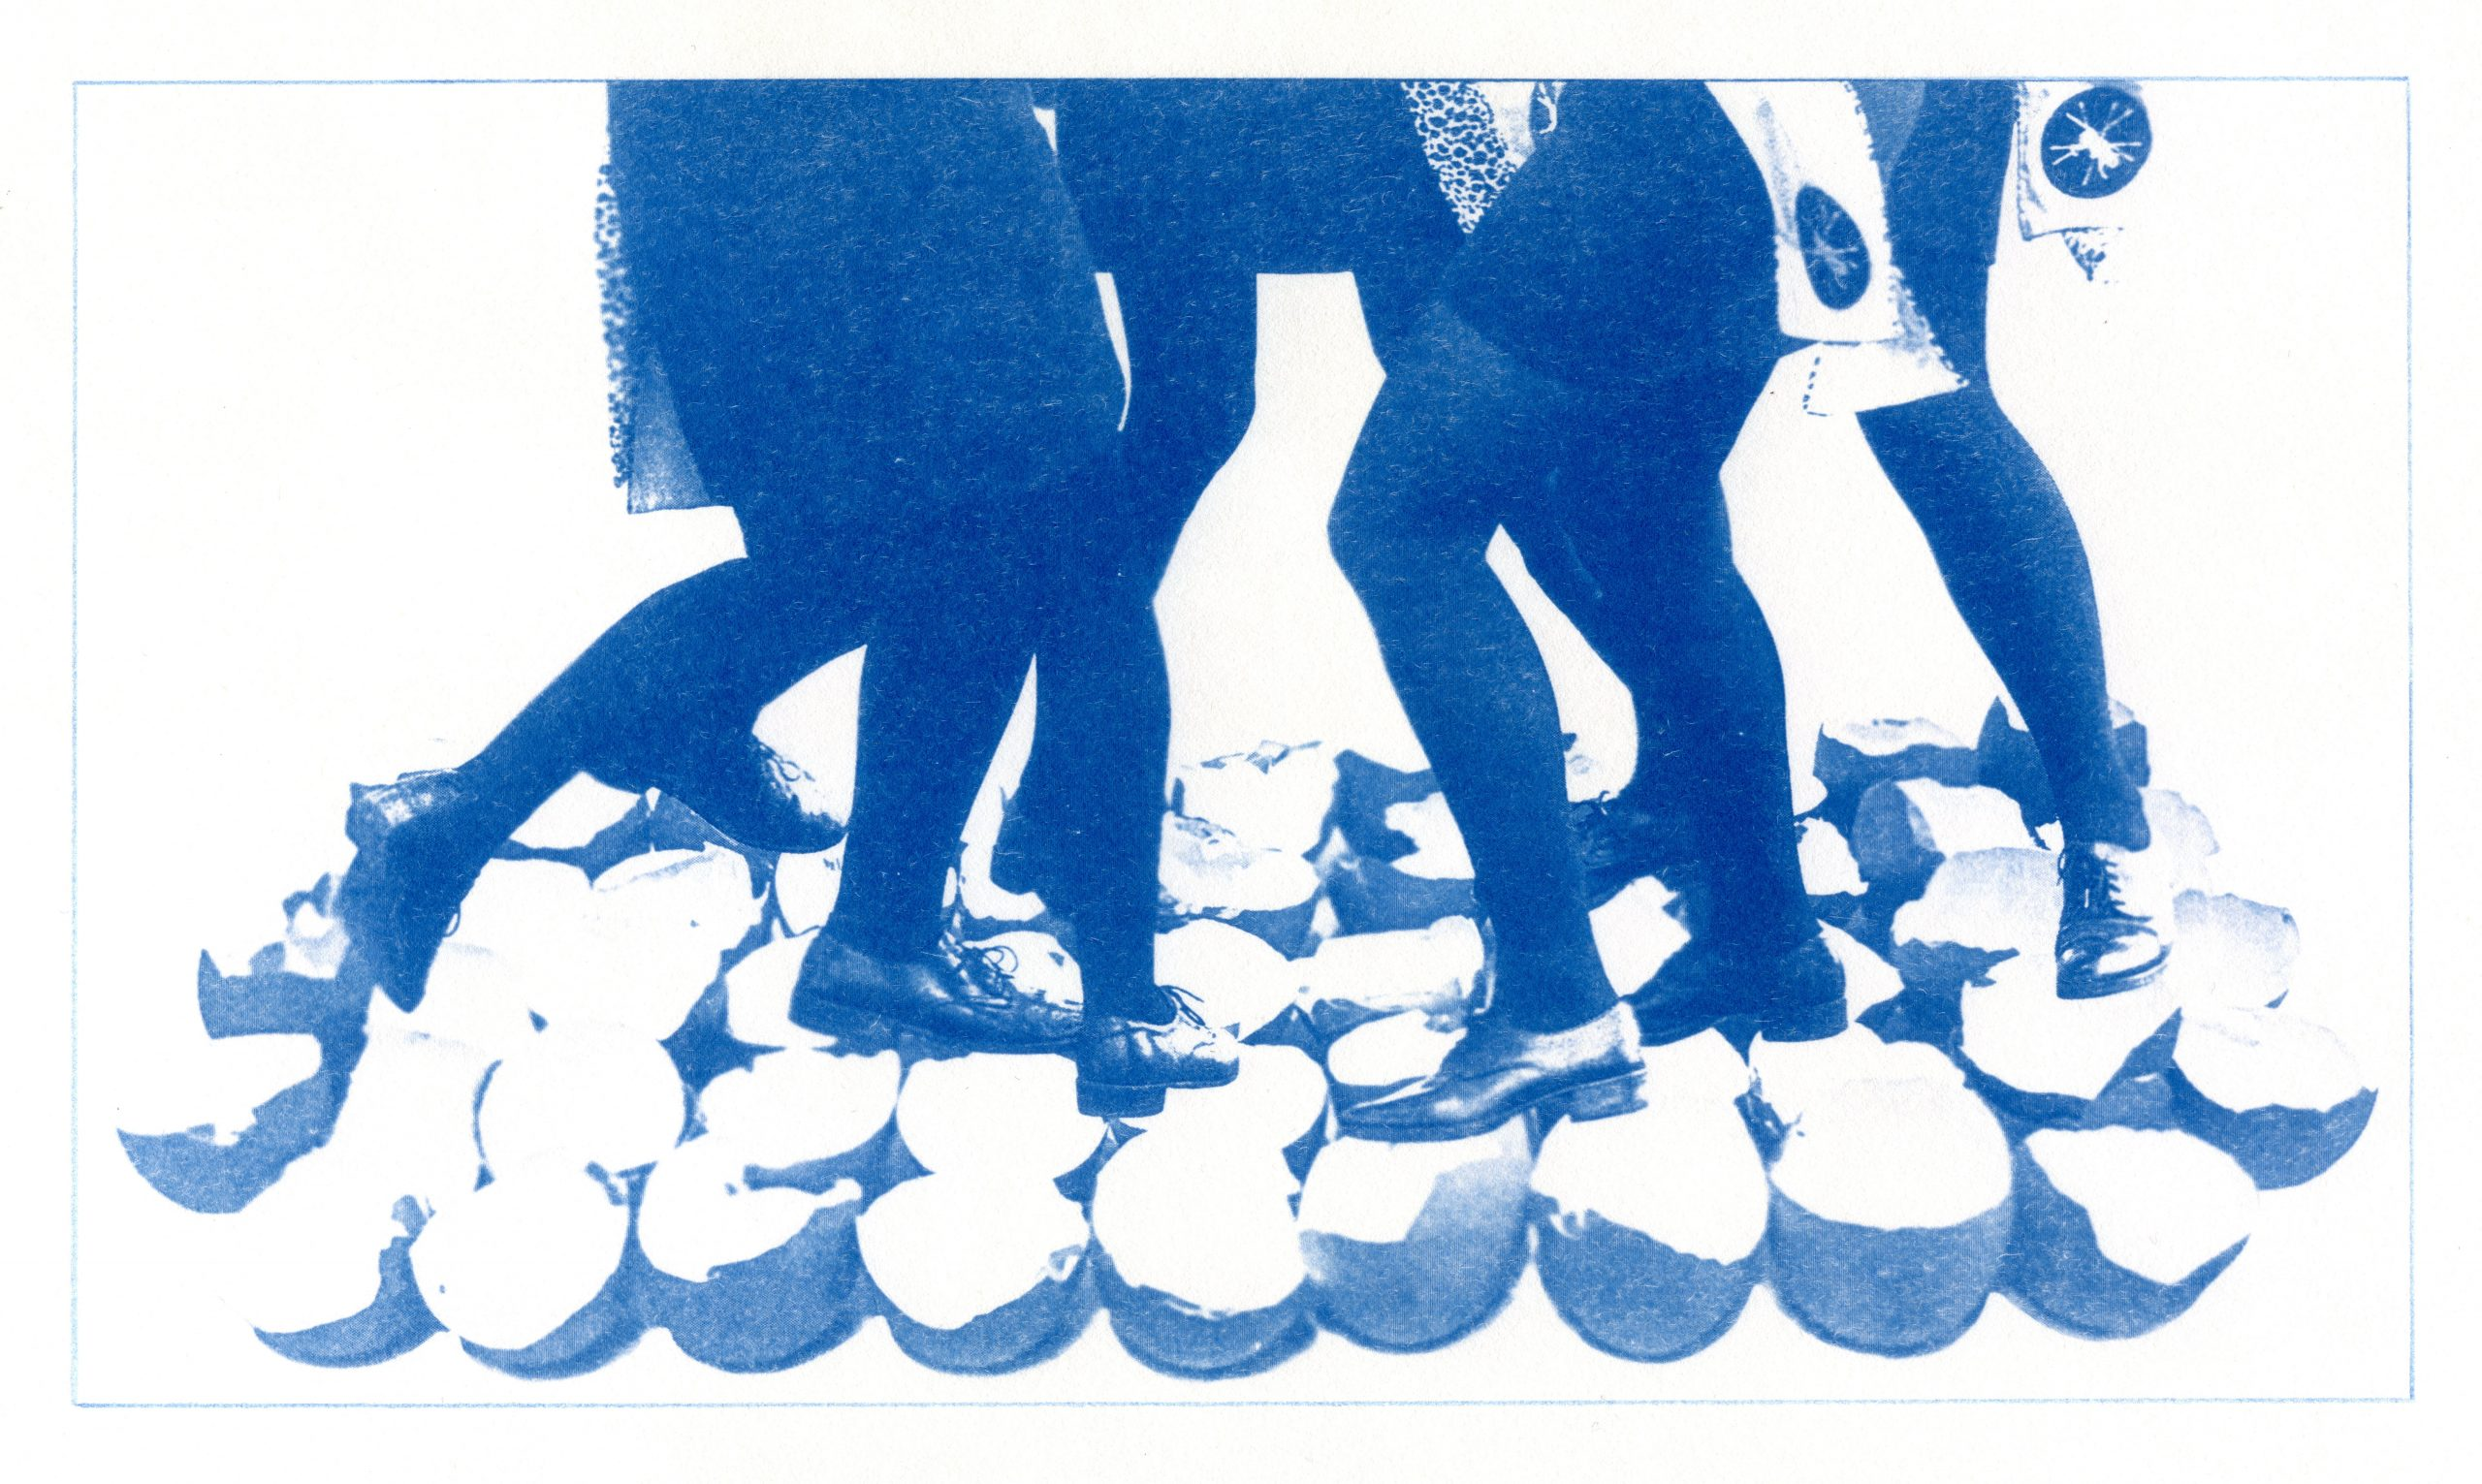 English Idioms: like Treading on Eggshells (Cyanotype photocomposite)